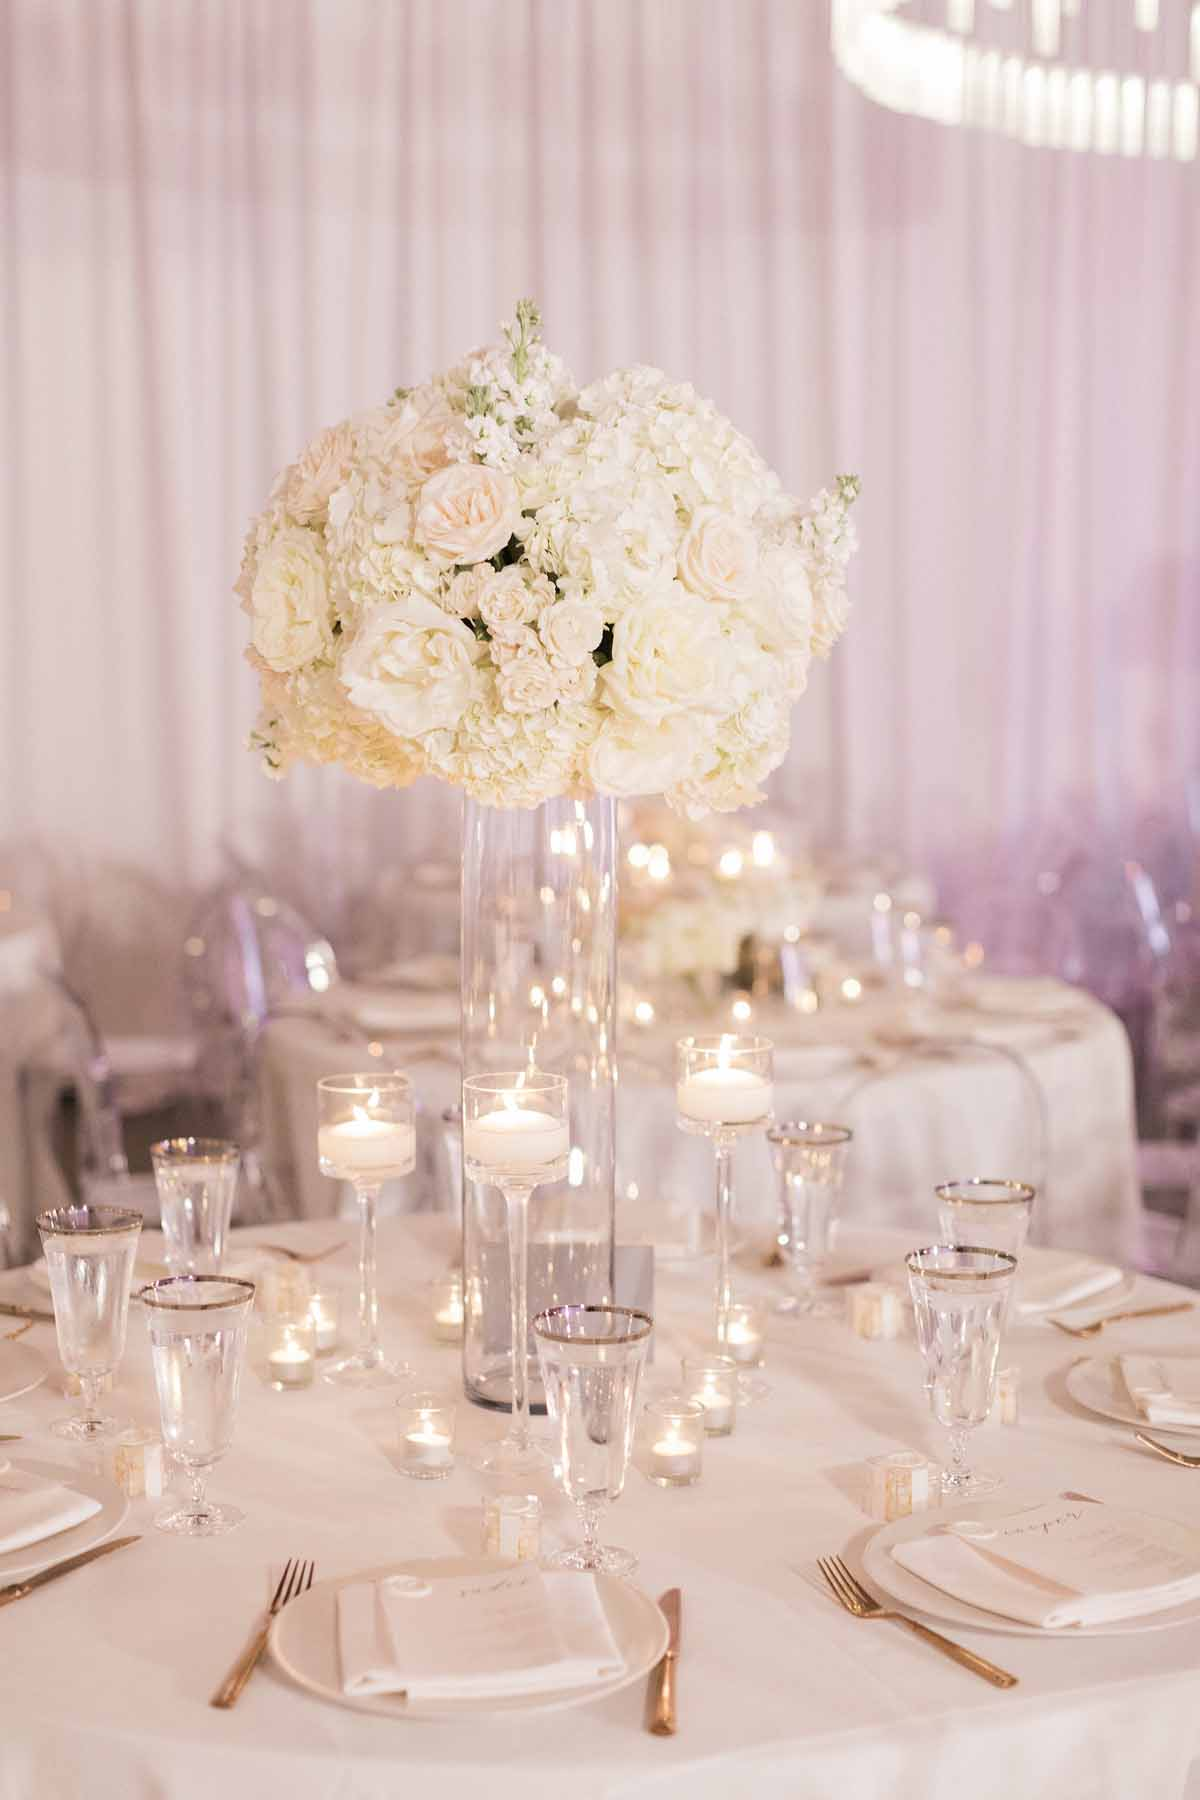 Tall, white centerpiece of white roses and white hydrangea and floating glass candle holders - by Flora Nova Design